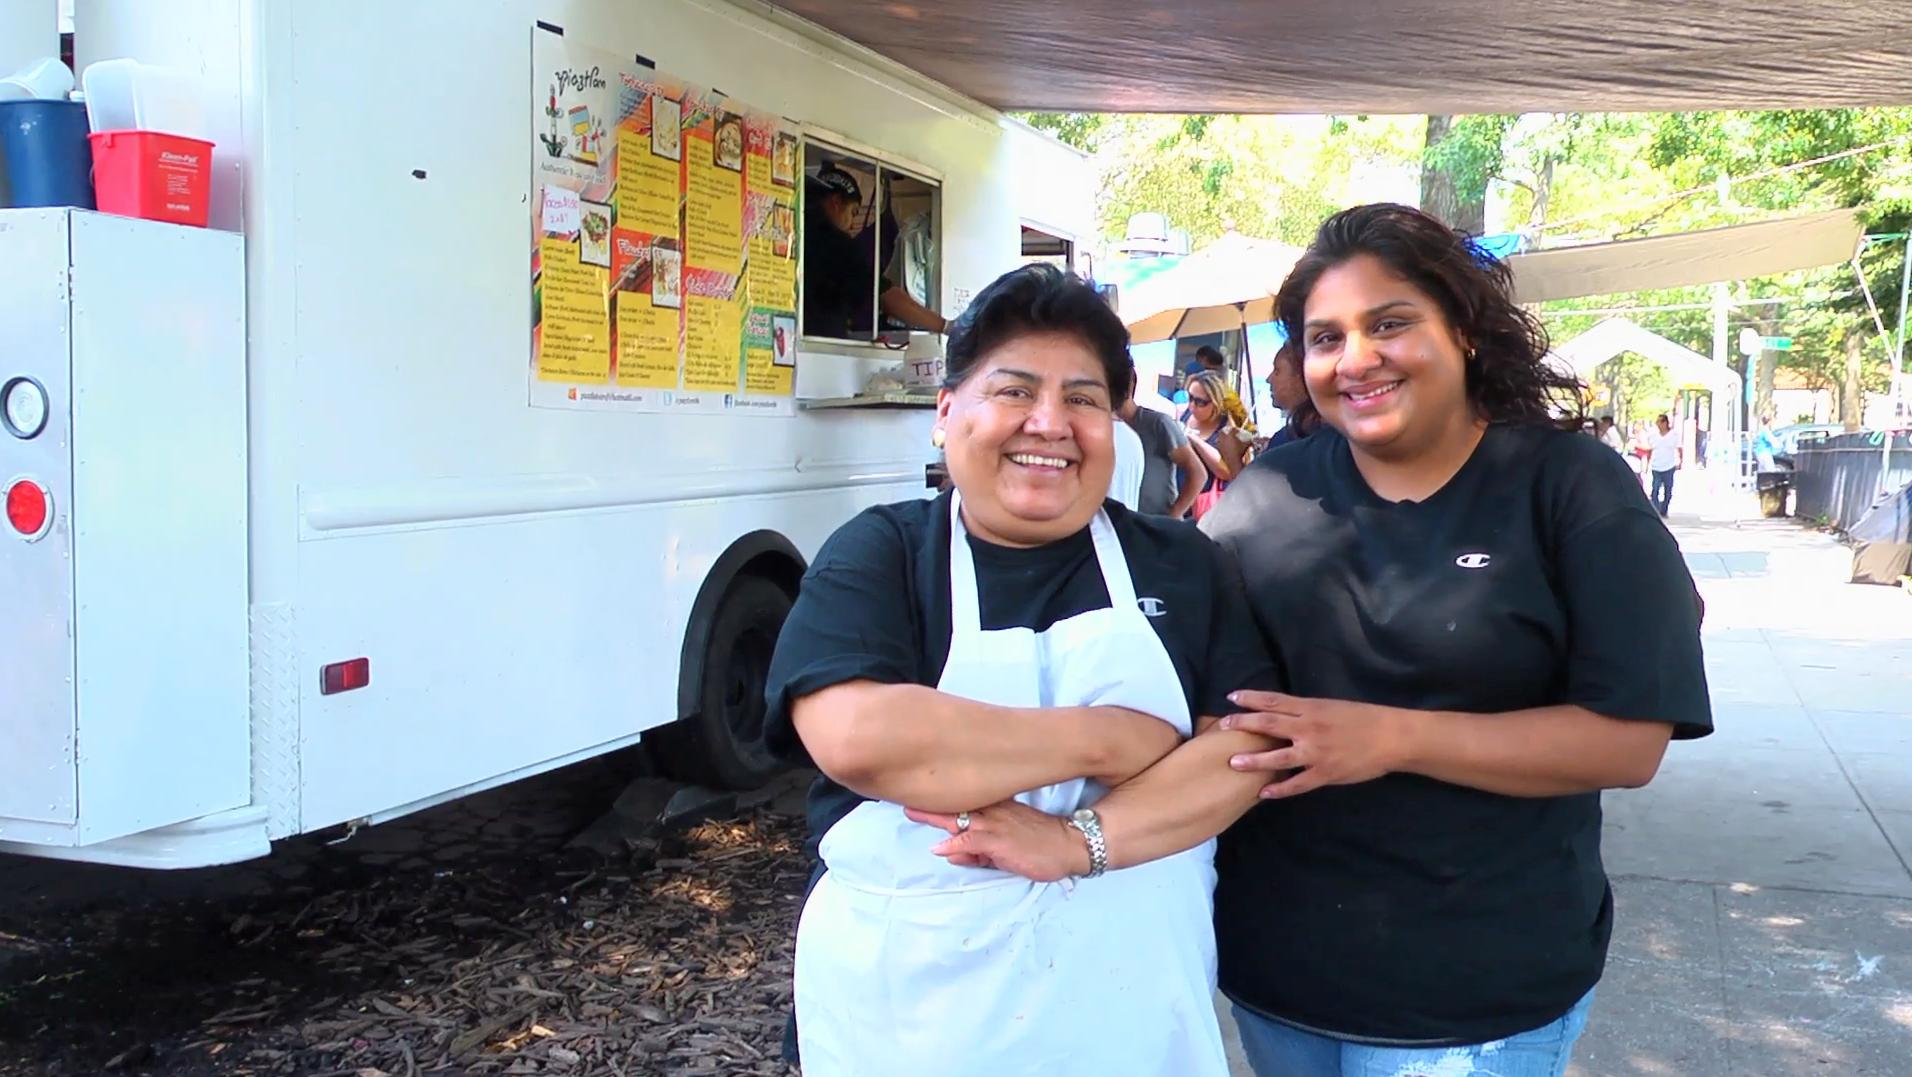 2012 NYC Vendy Awards Finalist: Piaztlan Authentic Mexican Food Truck